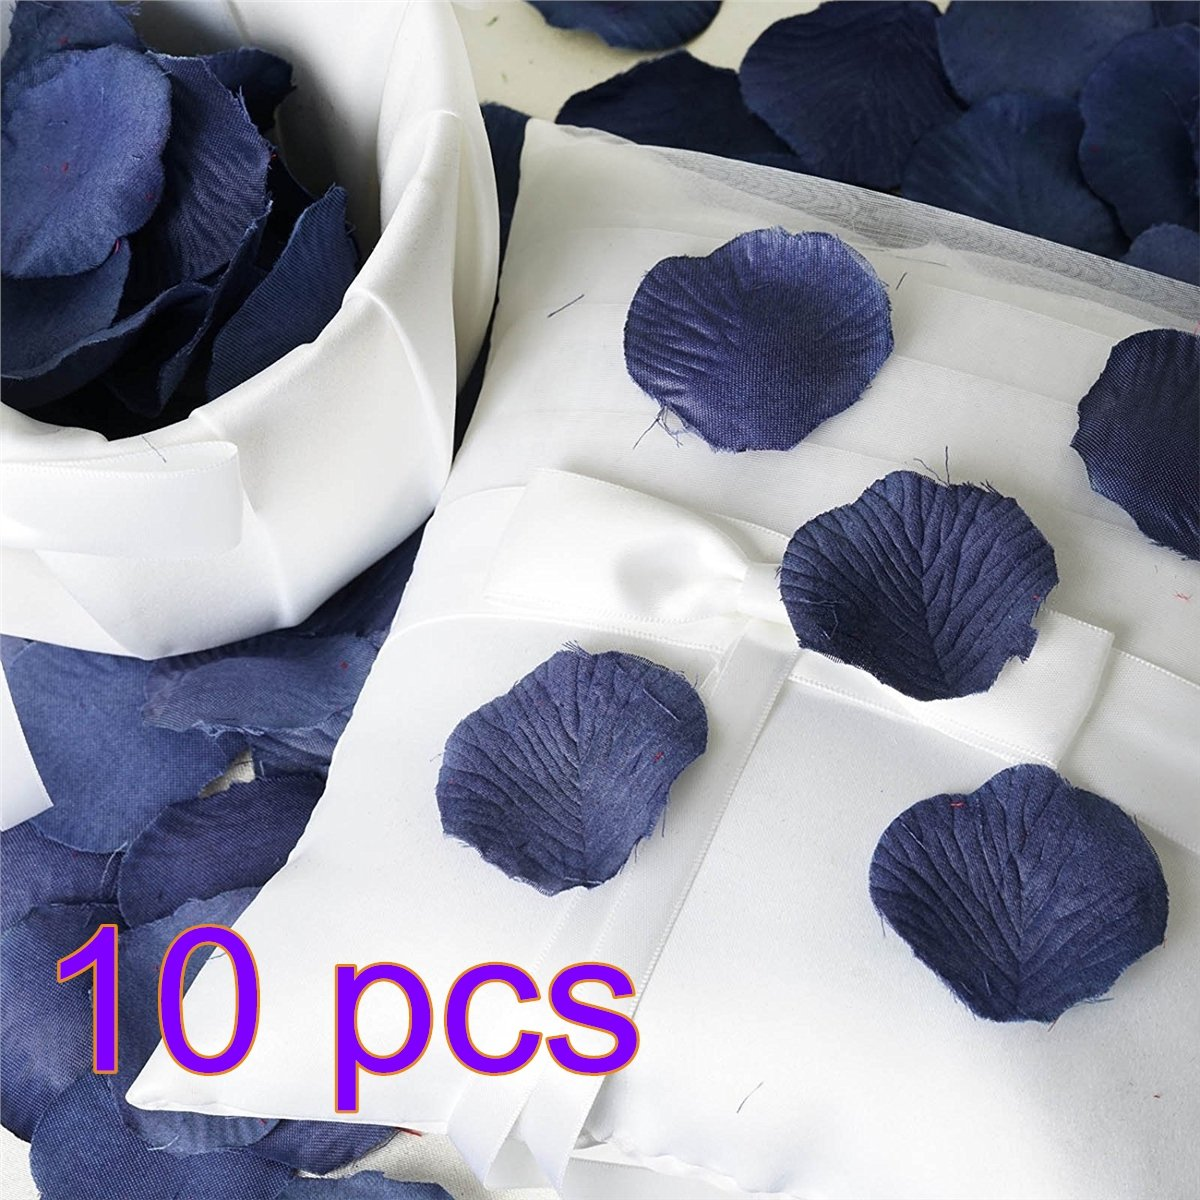 Rose Petals - Silk Artificial Flower Petals - Navy Blue Roses Flower Petals for Wedding Confetti Table Scatter Bridal Shower Party Flora Petal Favor 1000pcs Hemore